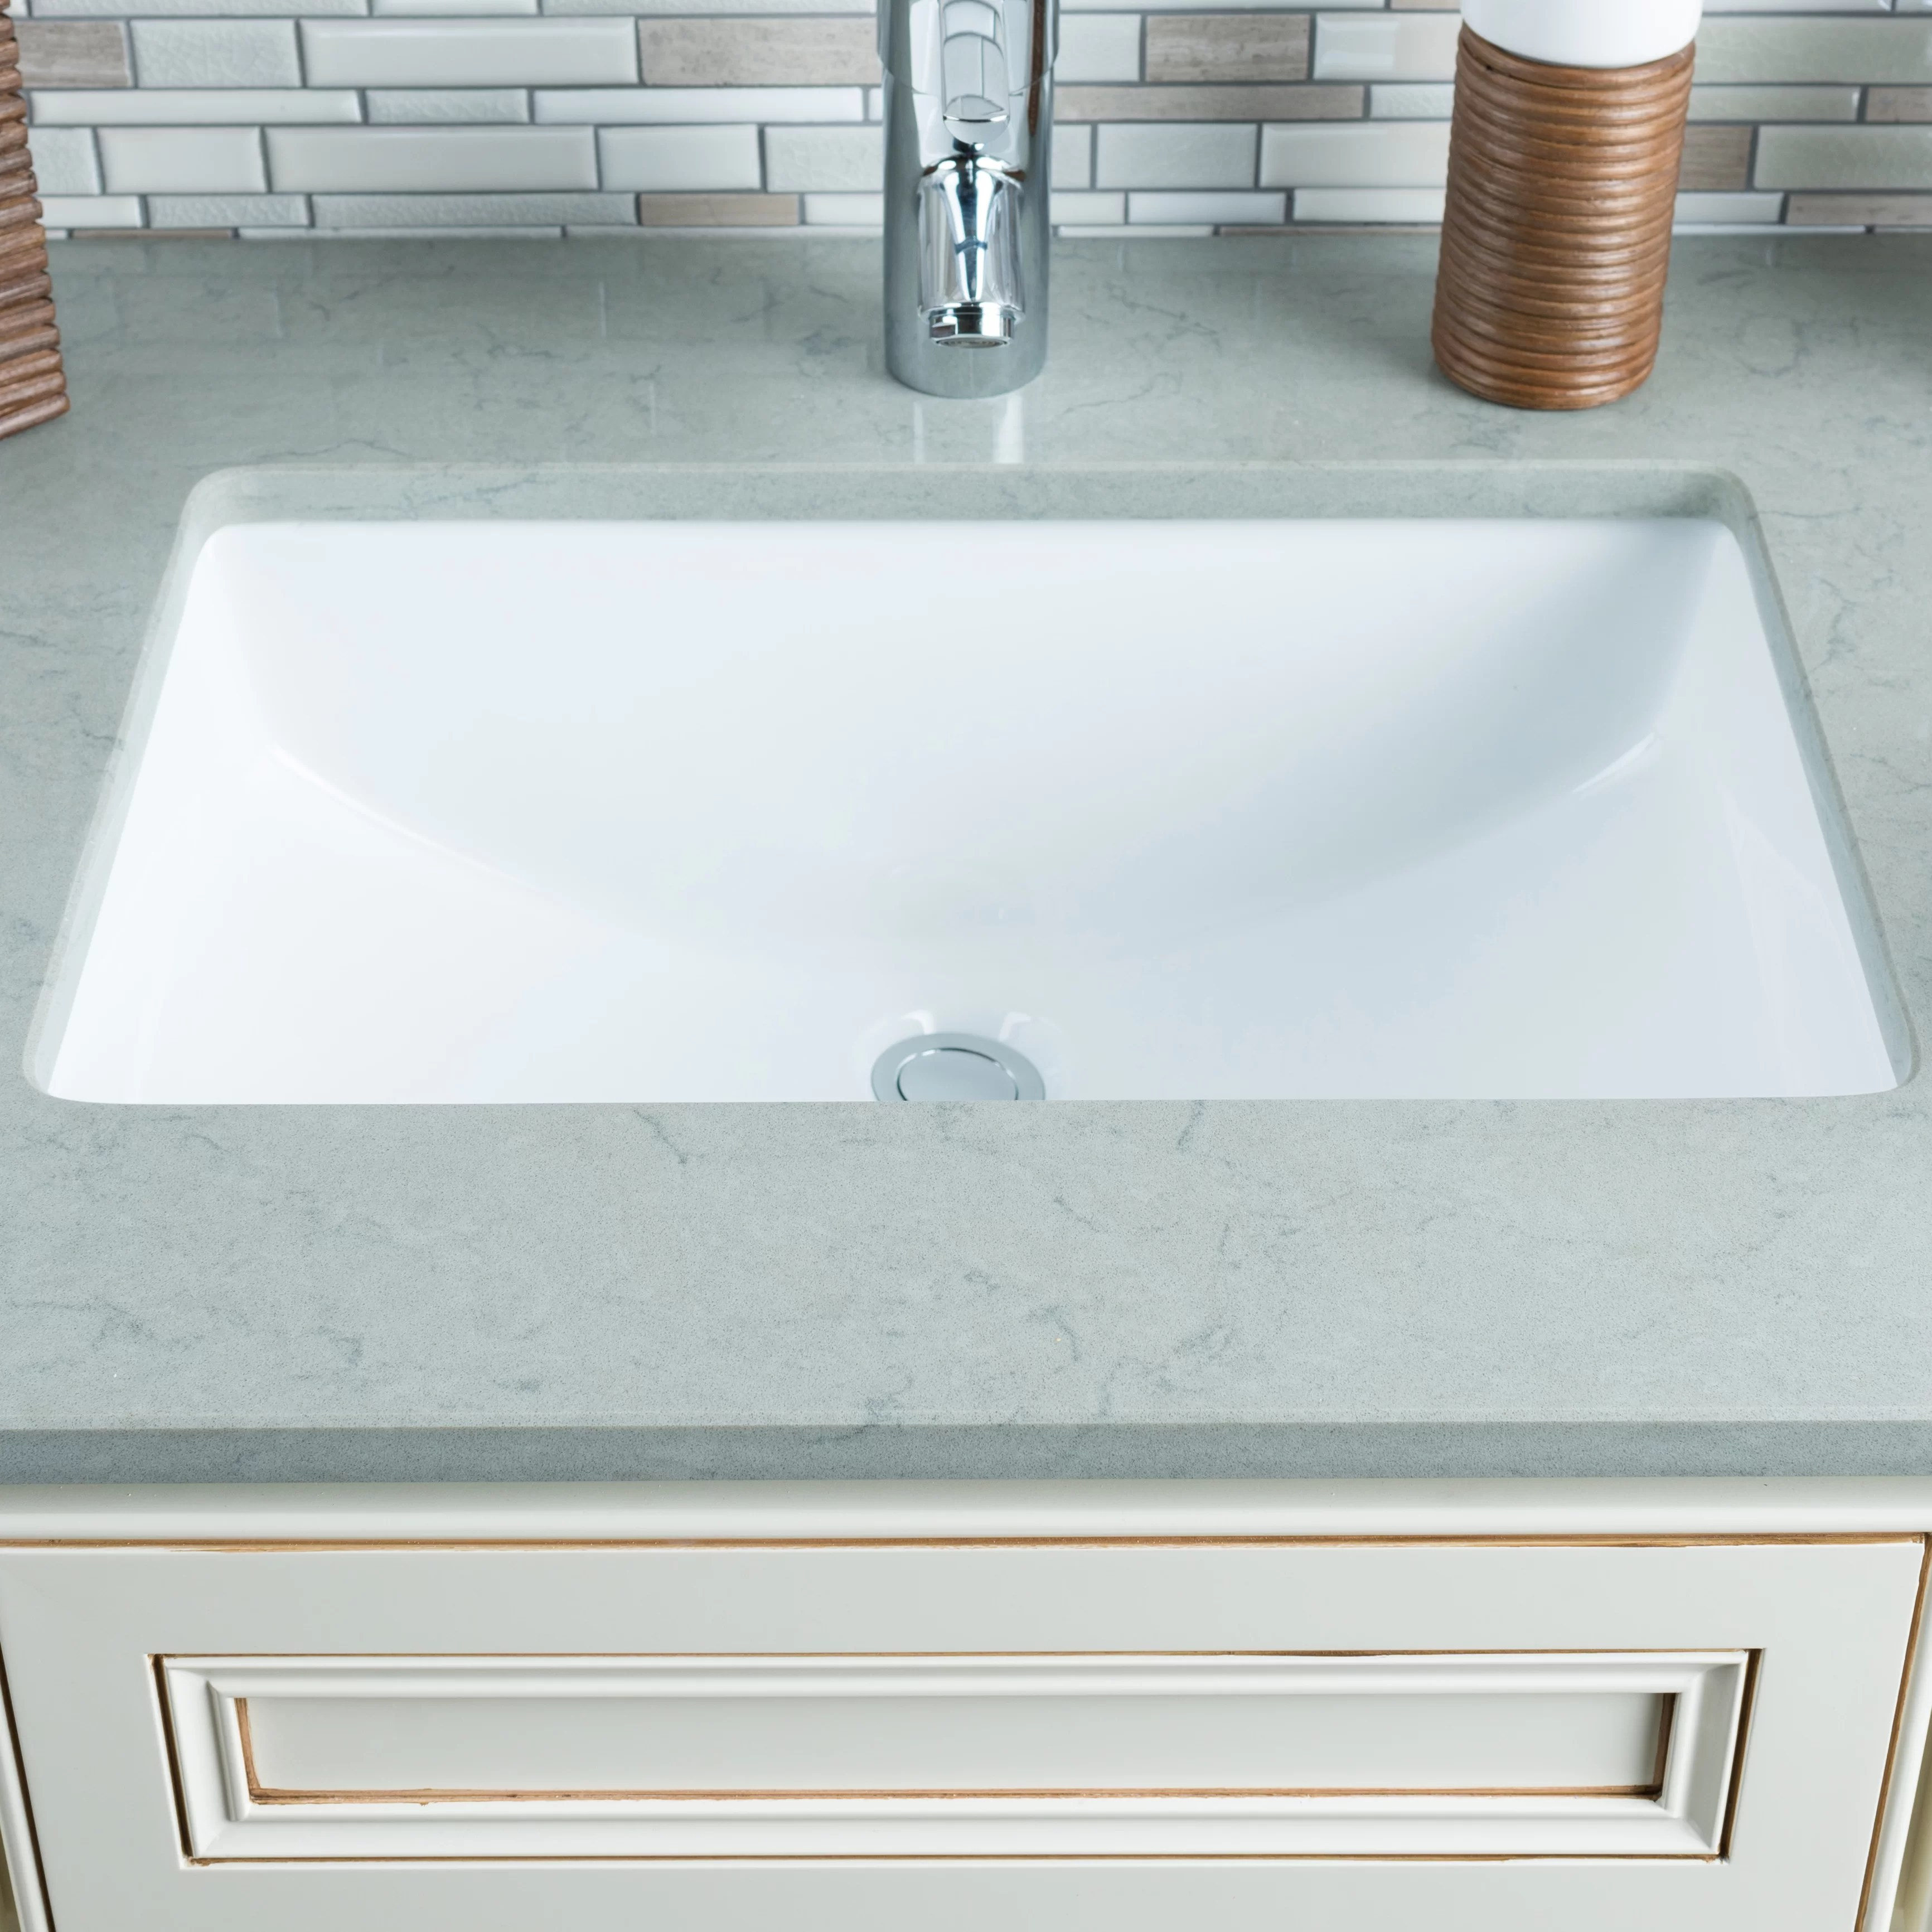 undermount bathroom sinks hahn kitchen sinks hahn ceramic bowl rectangular undermount bathroom sink with overflow